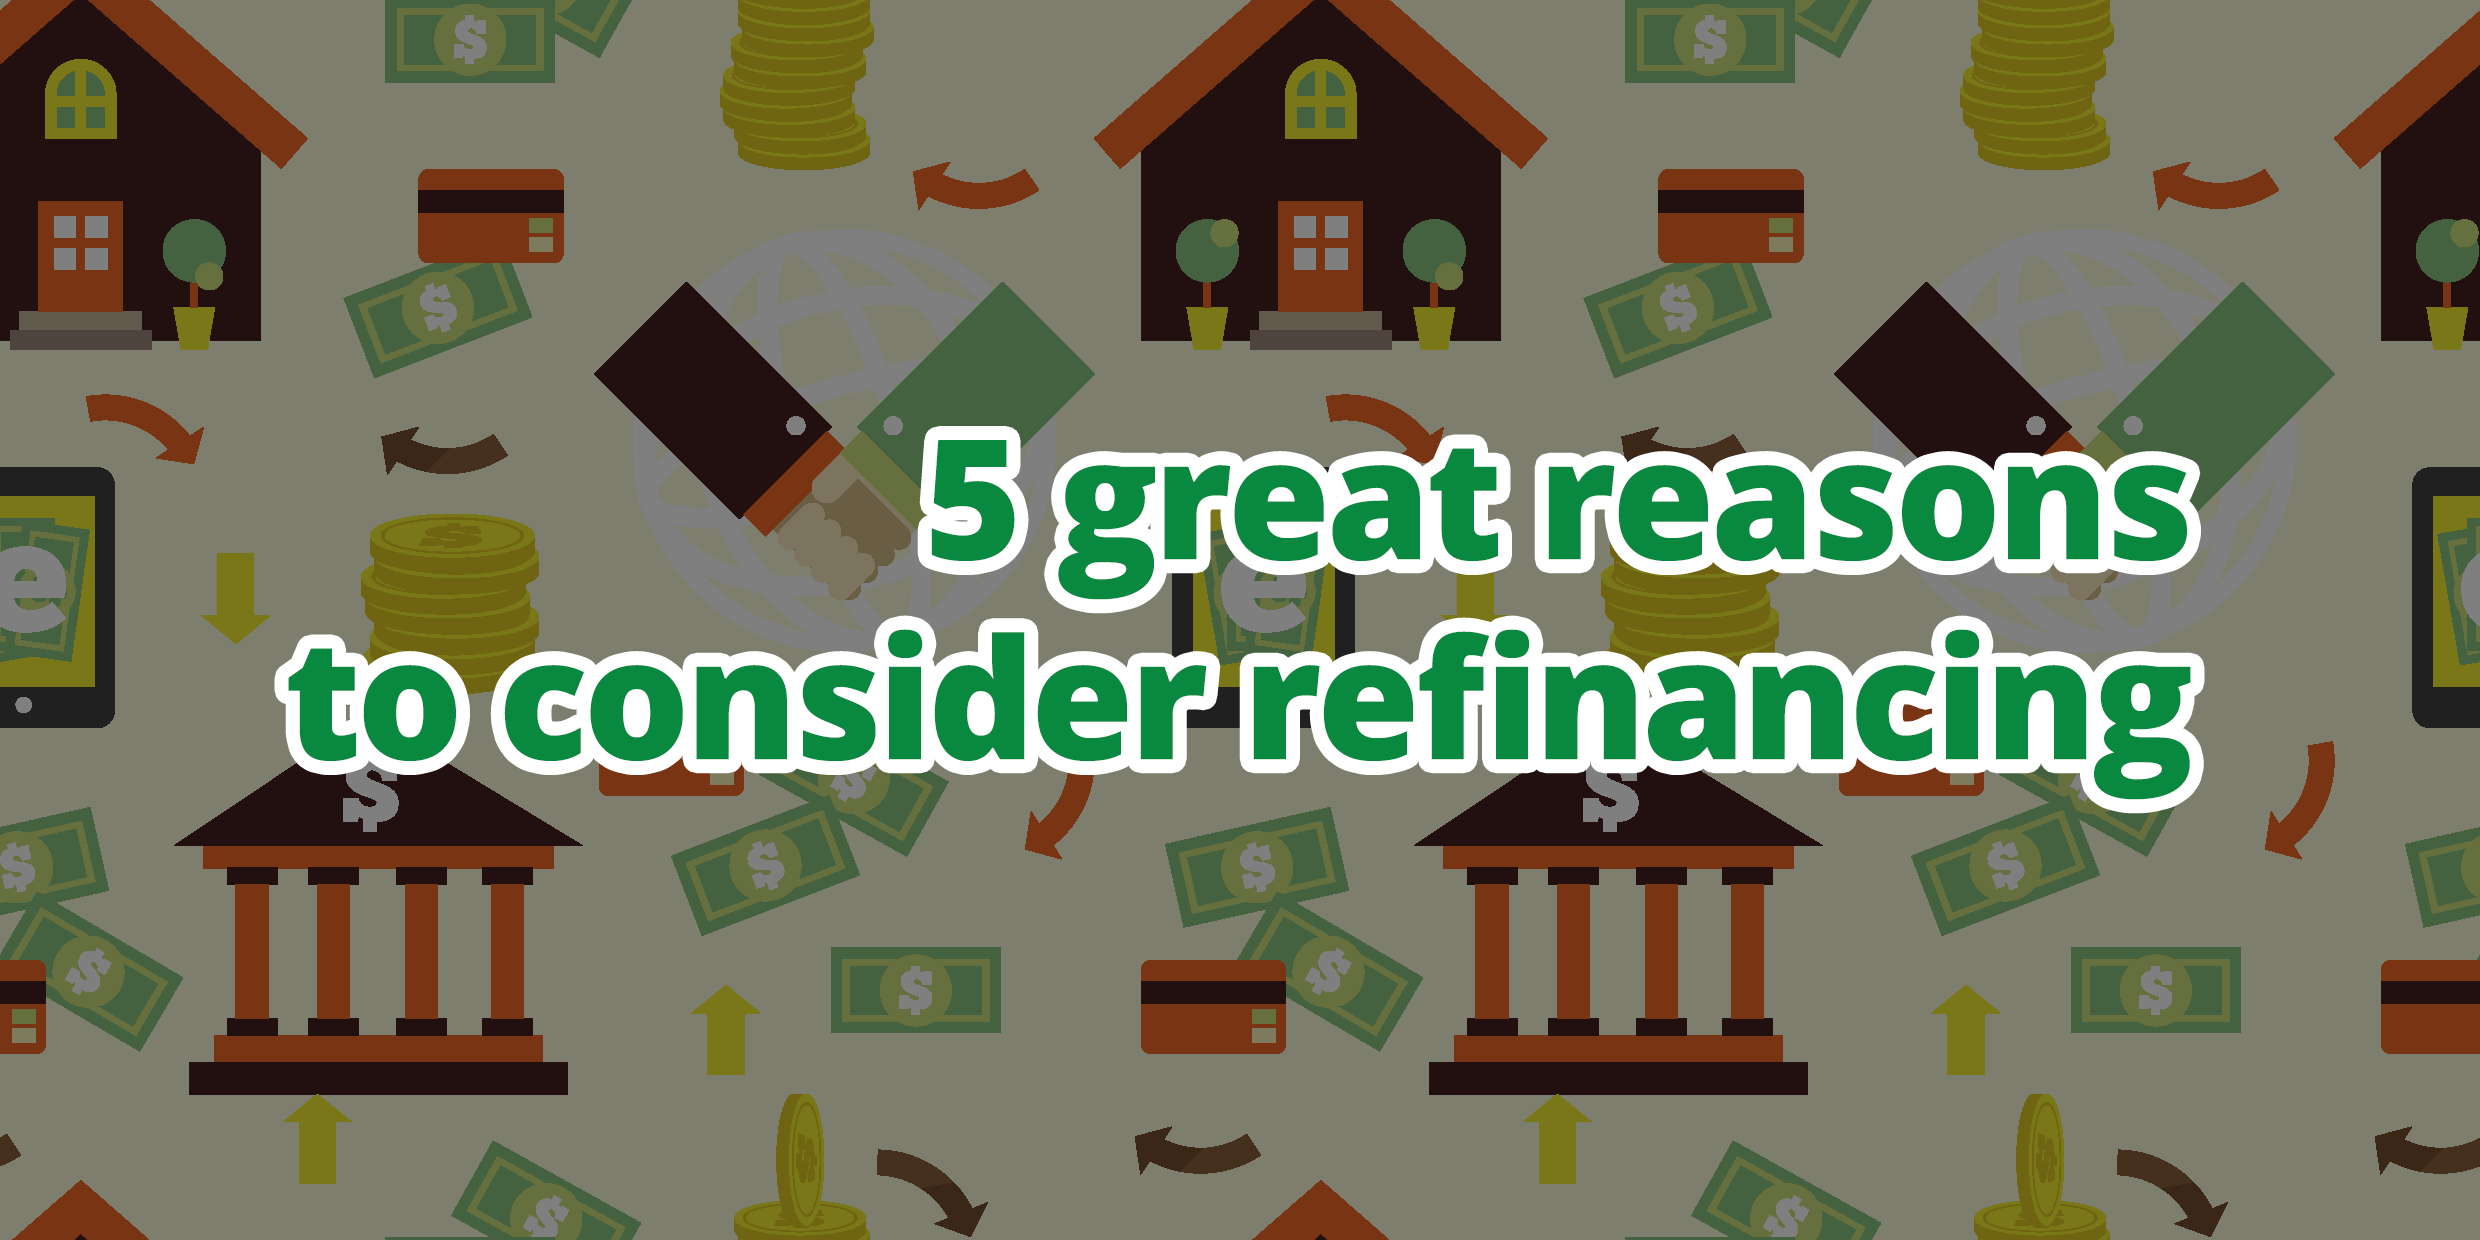 5 great reasons to consider refinancing